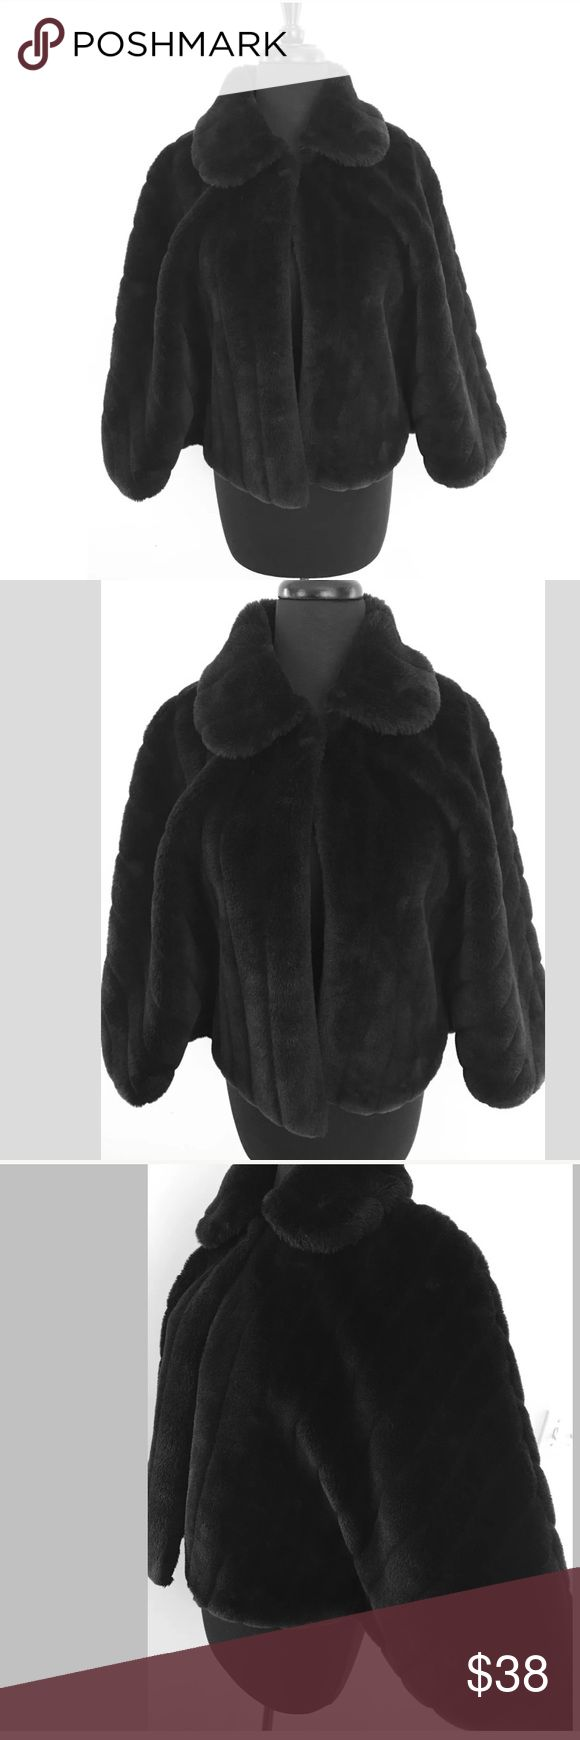 East 5th Black Faux Fur Bolero Cape Jacket East 5th Black Bolero Cape Jacket   Perfect for holiday festivities,any formal event or to wear every day to dress up an outfit   Size Large / X Large - Runs Small - Best fits a Medium 77% Acrylic & 23% Polyester   In overall good condition but does have a very small area in the center back where the fabric looks a little worn when it's rubbed down but not visible when the fabric is rubbed up. Check out the rest of our closet and bundle 2 or more…